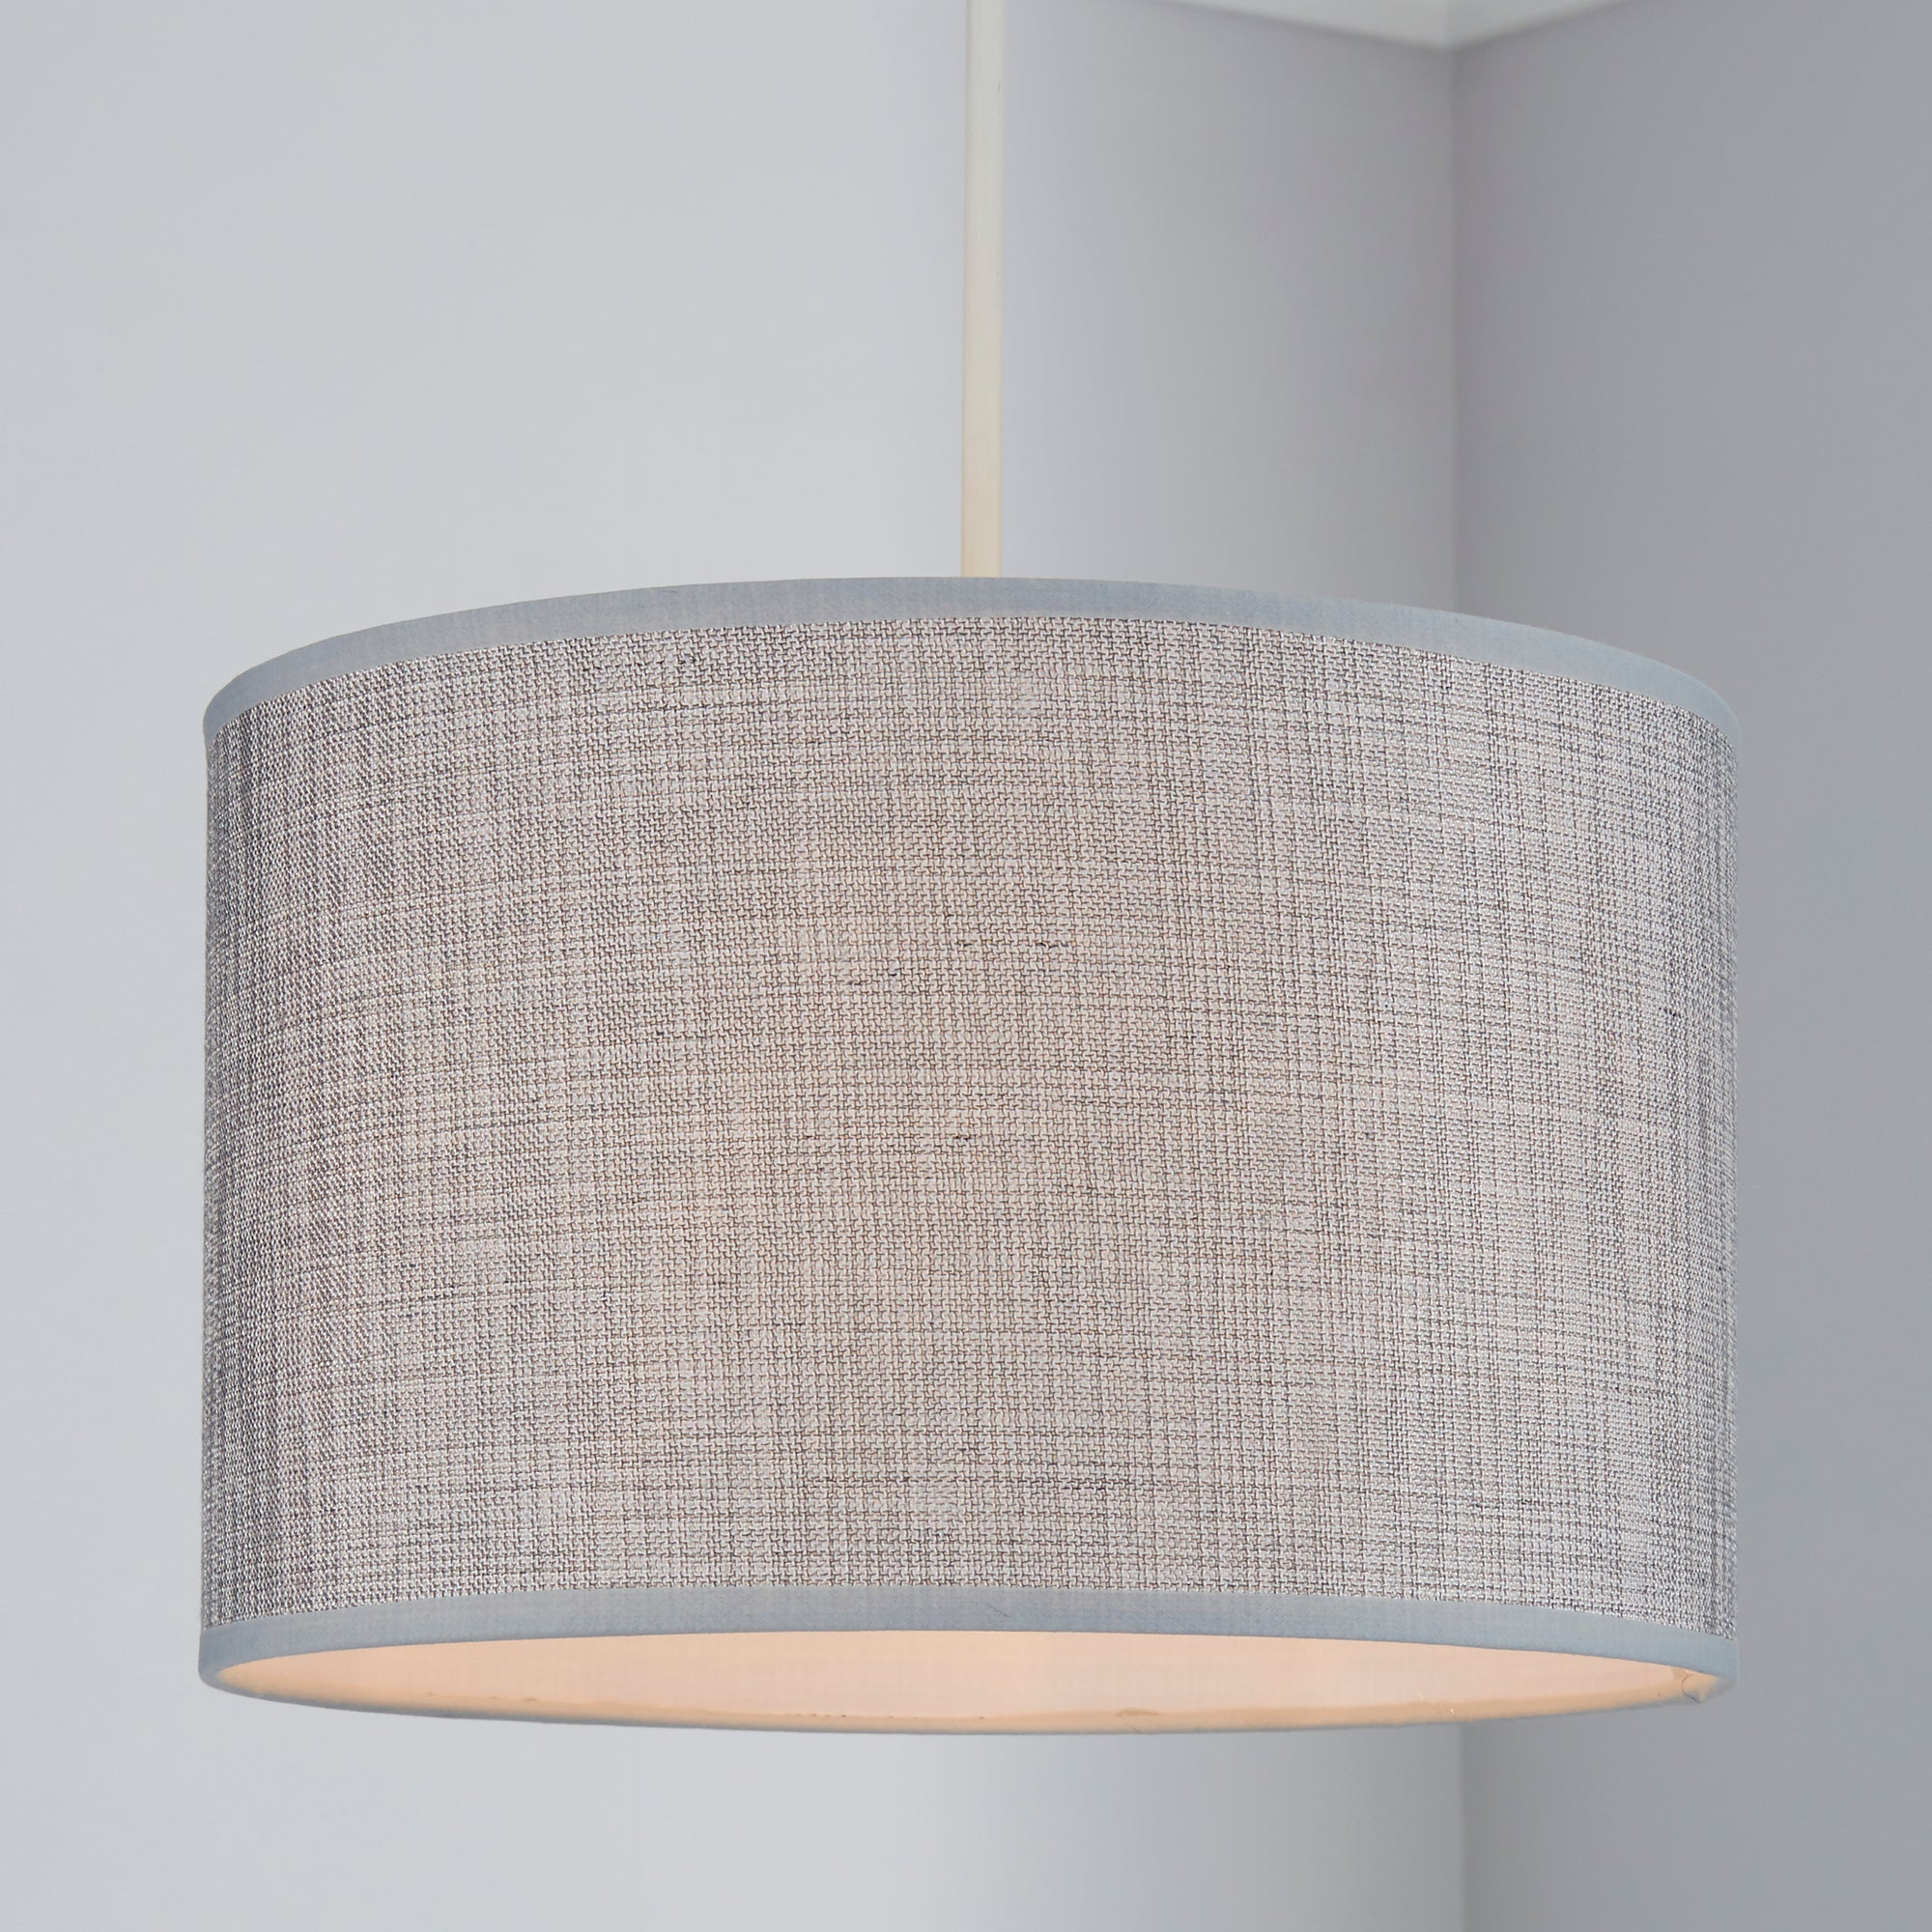 Dunelm Wall Lamp Shades : Carrie Textured Light Shade Dunelm